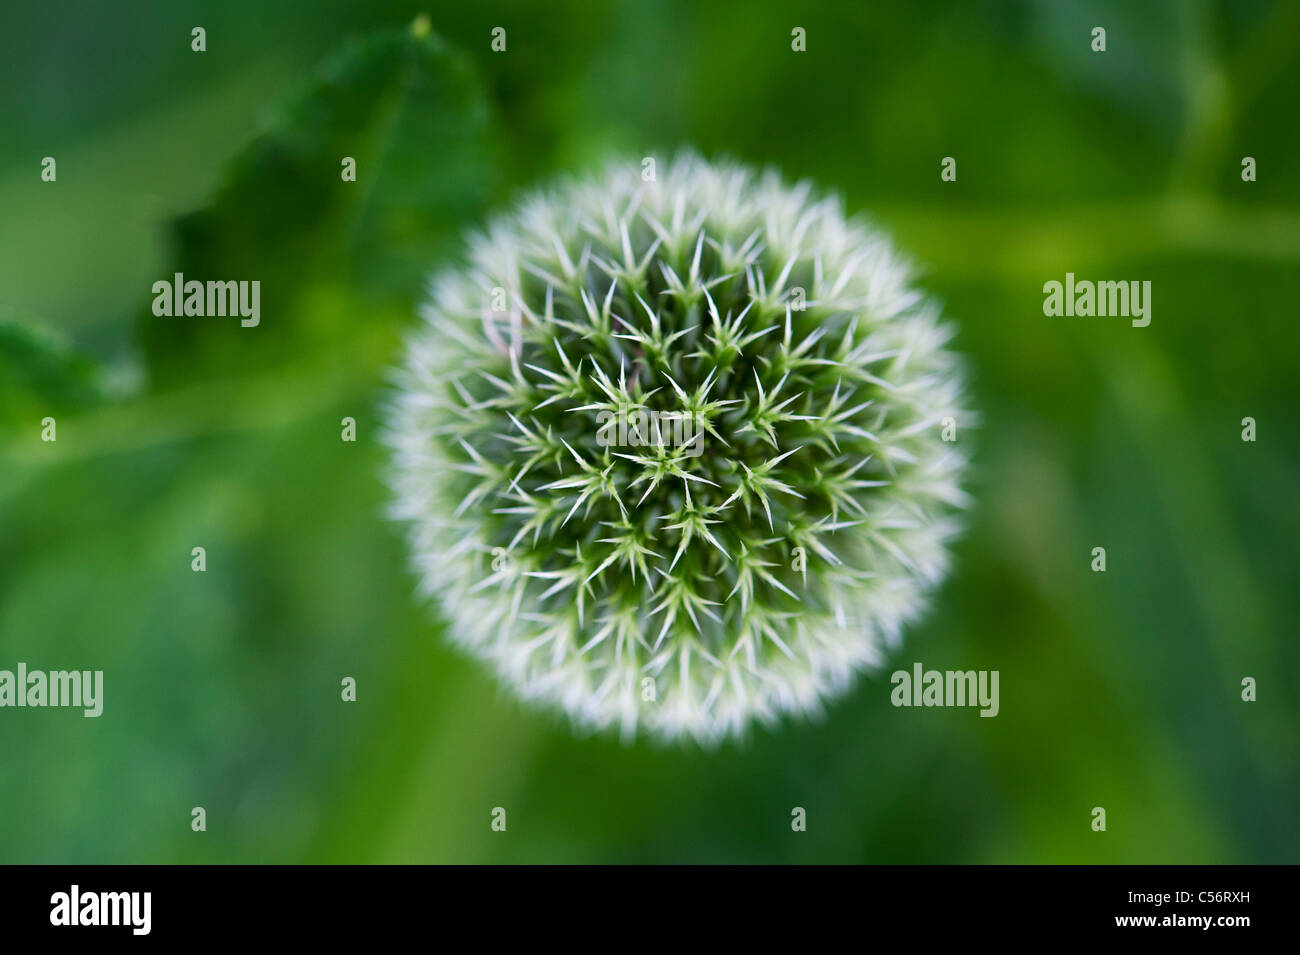 Echinops bannaticus Albus . Looking down onto a Globe thistle flower - Stock Image